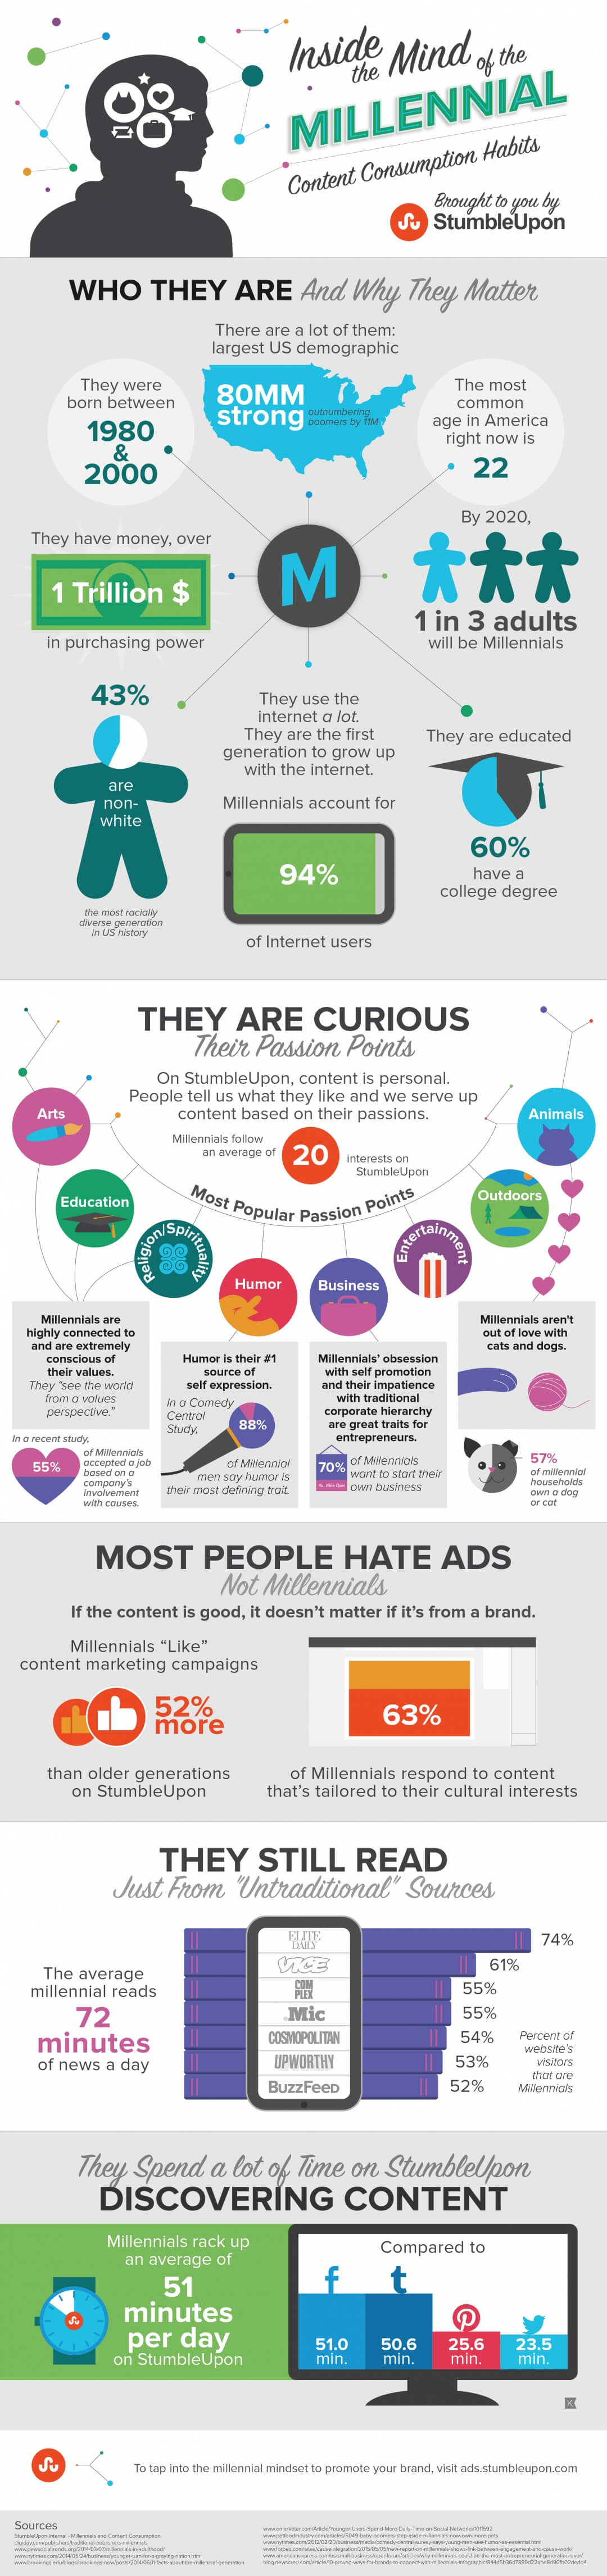 Kowal StumbleUpon Millennials Infographic Long 2015-05 rev007(a)